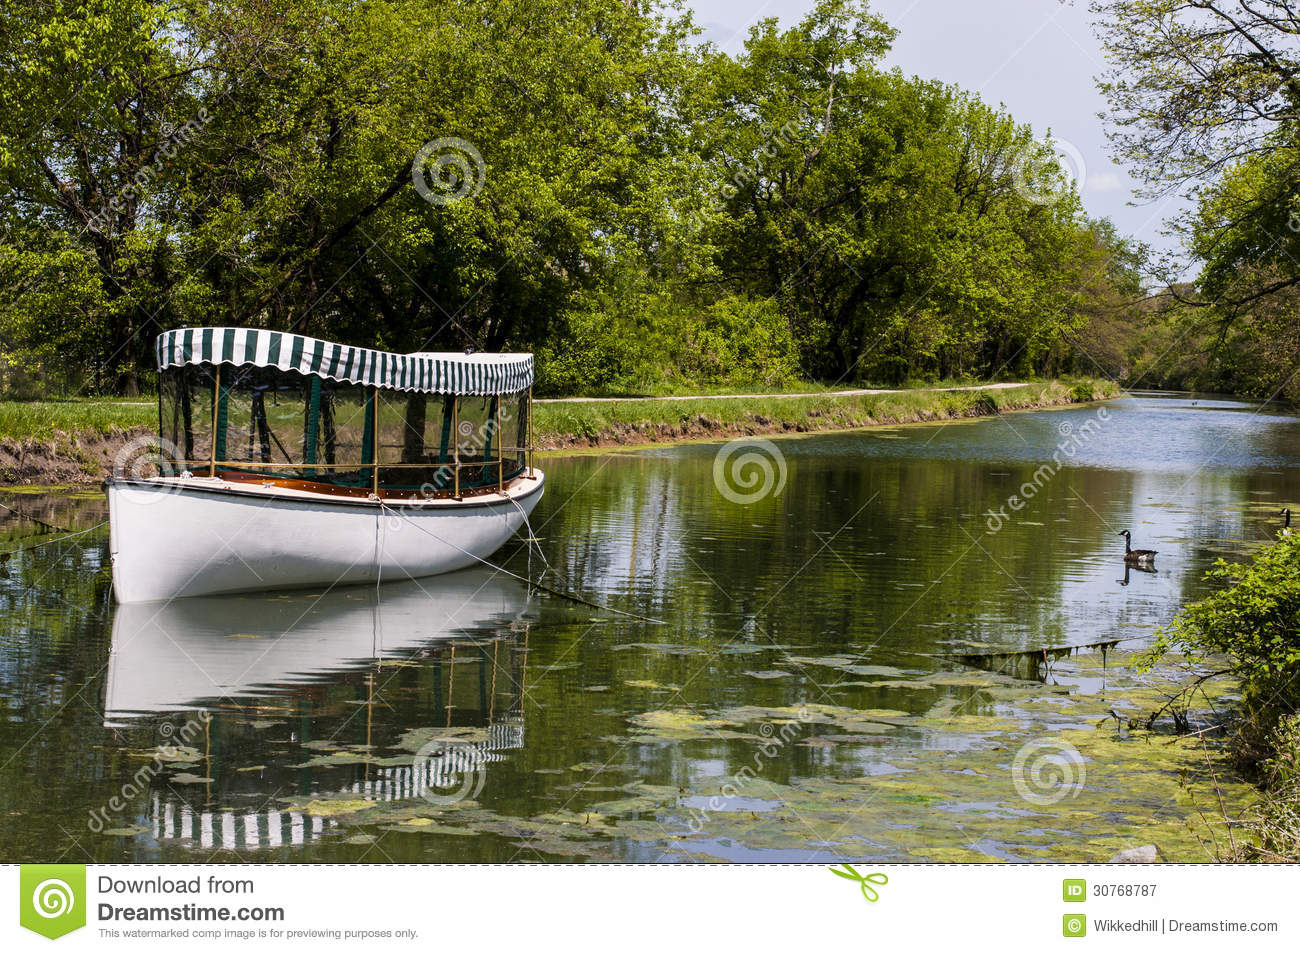 C&O Canal Boat Royalty Free Stock Photography.